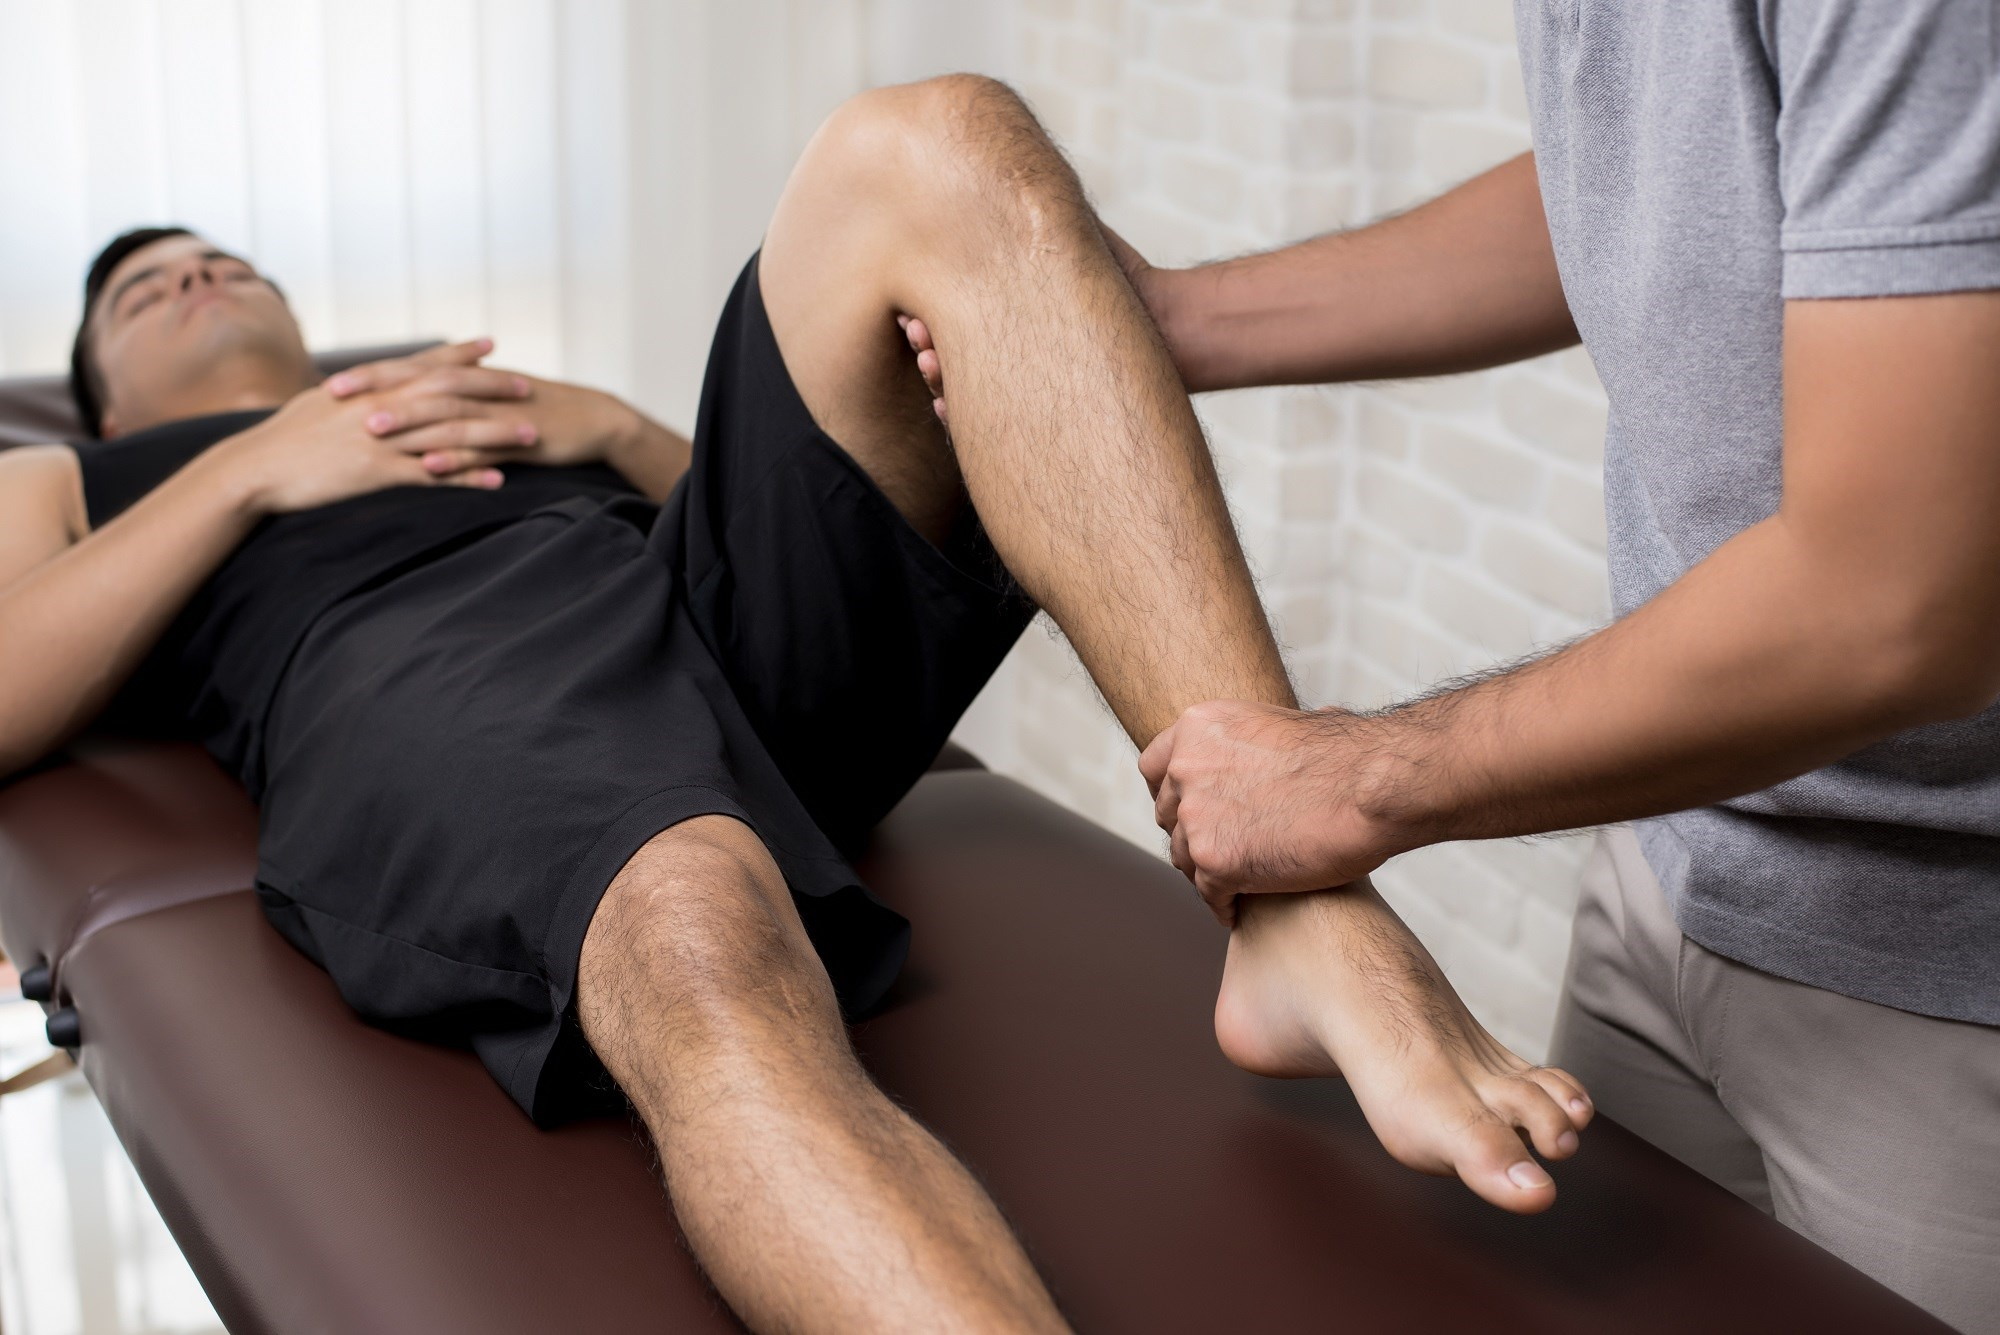 Early Physical Therapy for Musculoskeletal Pain May Reduce Opioid Use